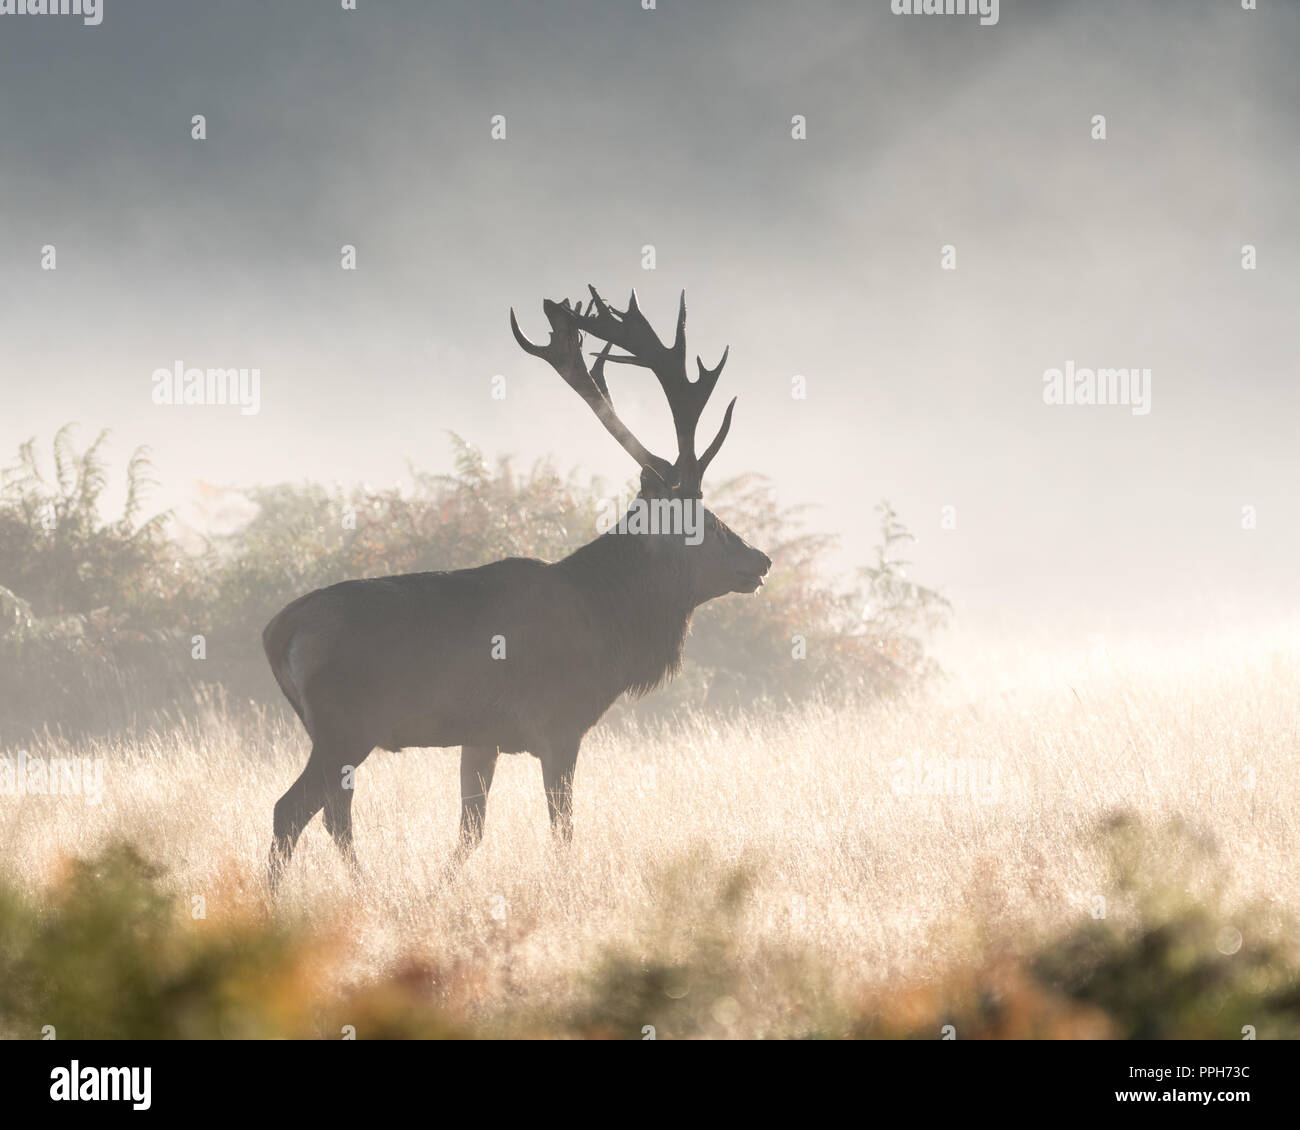 Richmond Park, United Kingdom. 26th September 2018. UK Weather:  Red deer stags bellow during a bright, cold morning in Richmond Park at the beginning of the rutting season. Credit: Andrew Plummer/Alamy Live News - Stock Image